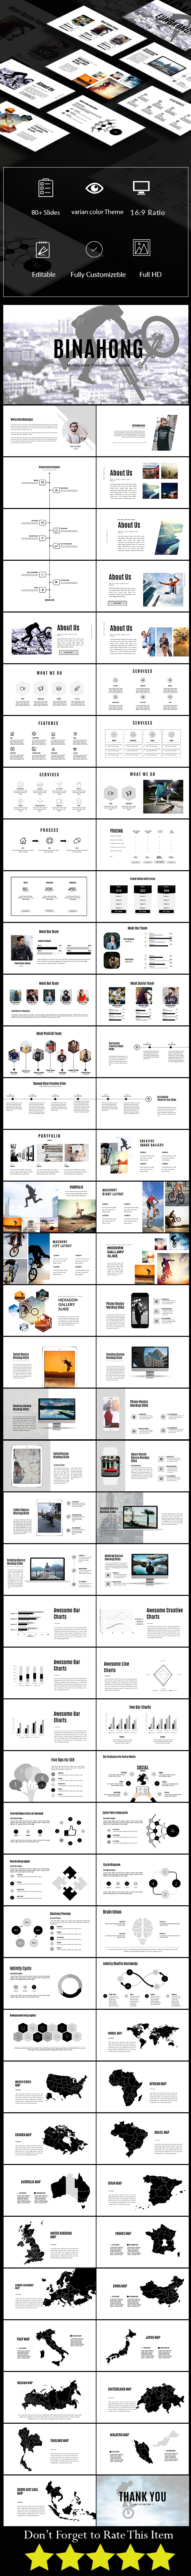 Binahong Powerpoint Presentation - PowerPoint Templates Presentation Templates